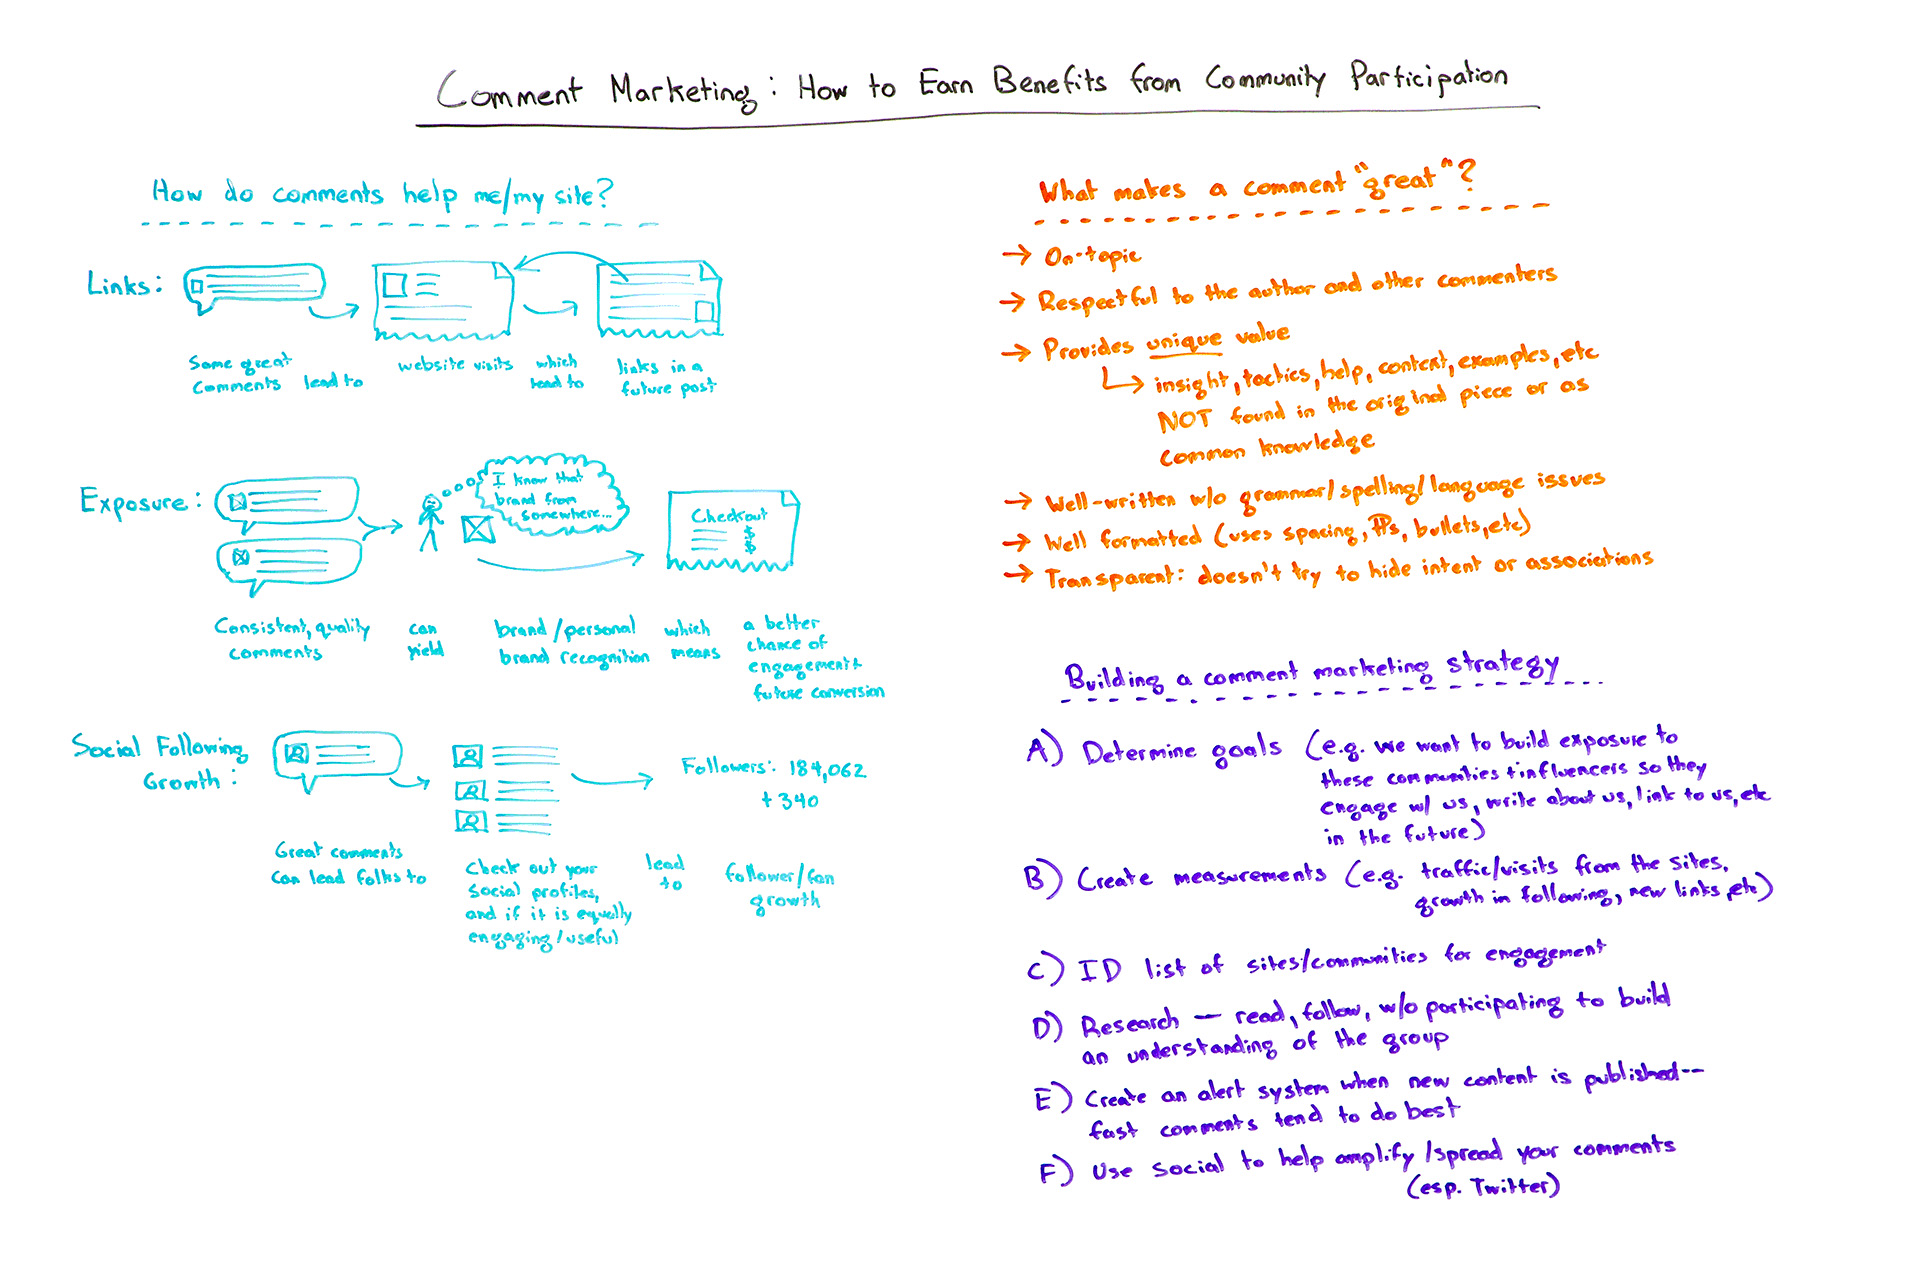 Comment Marketing  How to Earn Benefits from Community Participation - Moz 41f19b4ed5f3